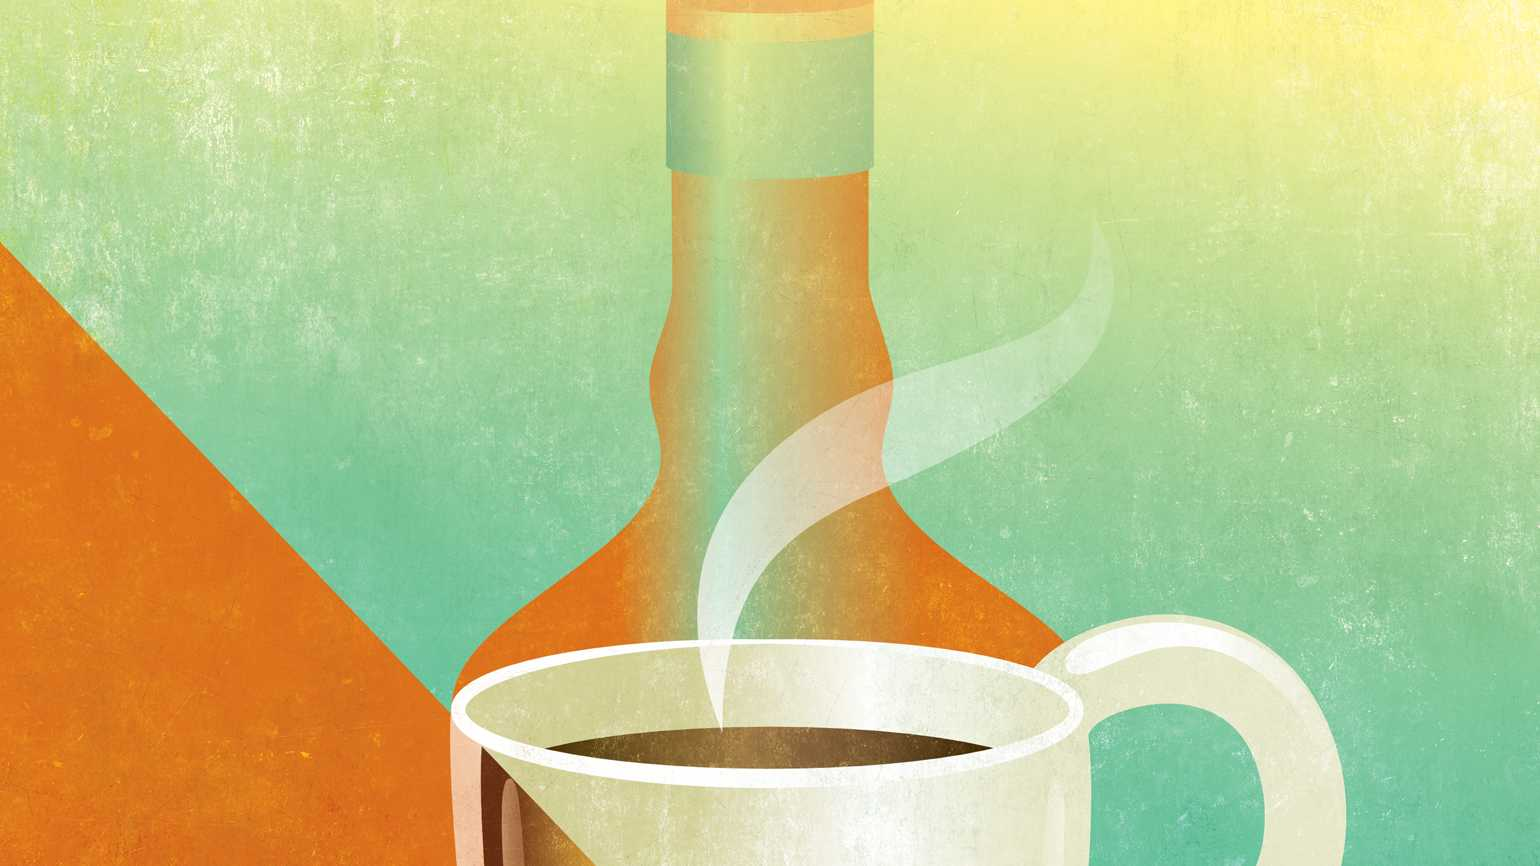 A steaming coffee cup; Illustration by Traci Daberko